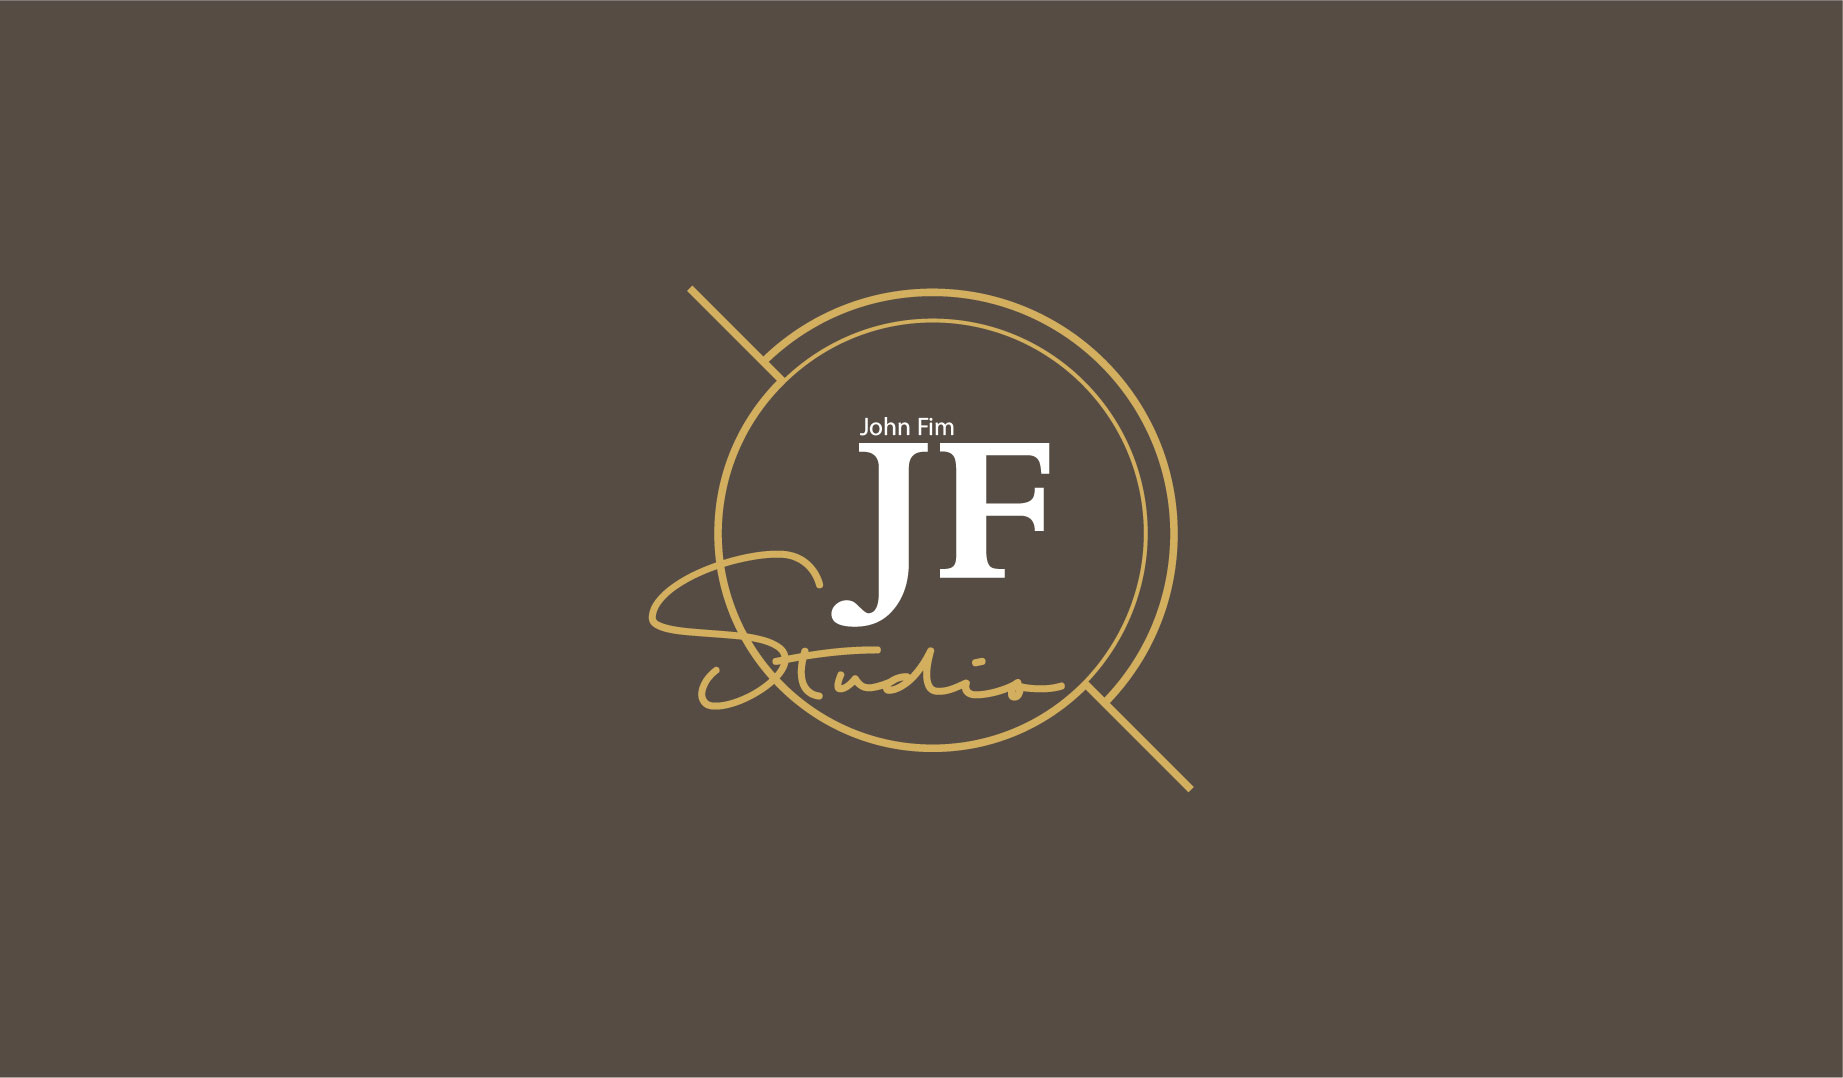 logo design service for Jhon Film